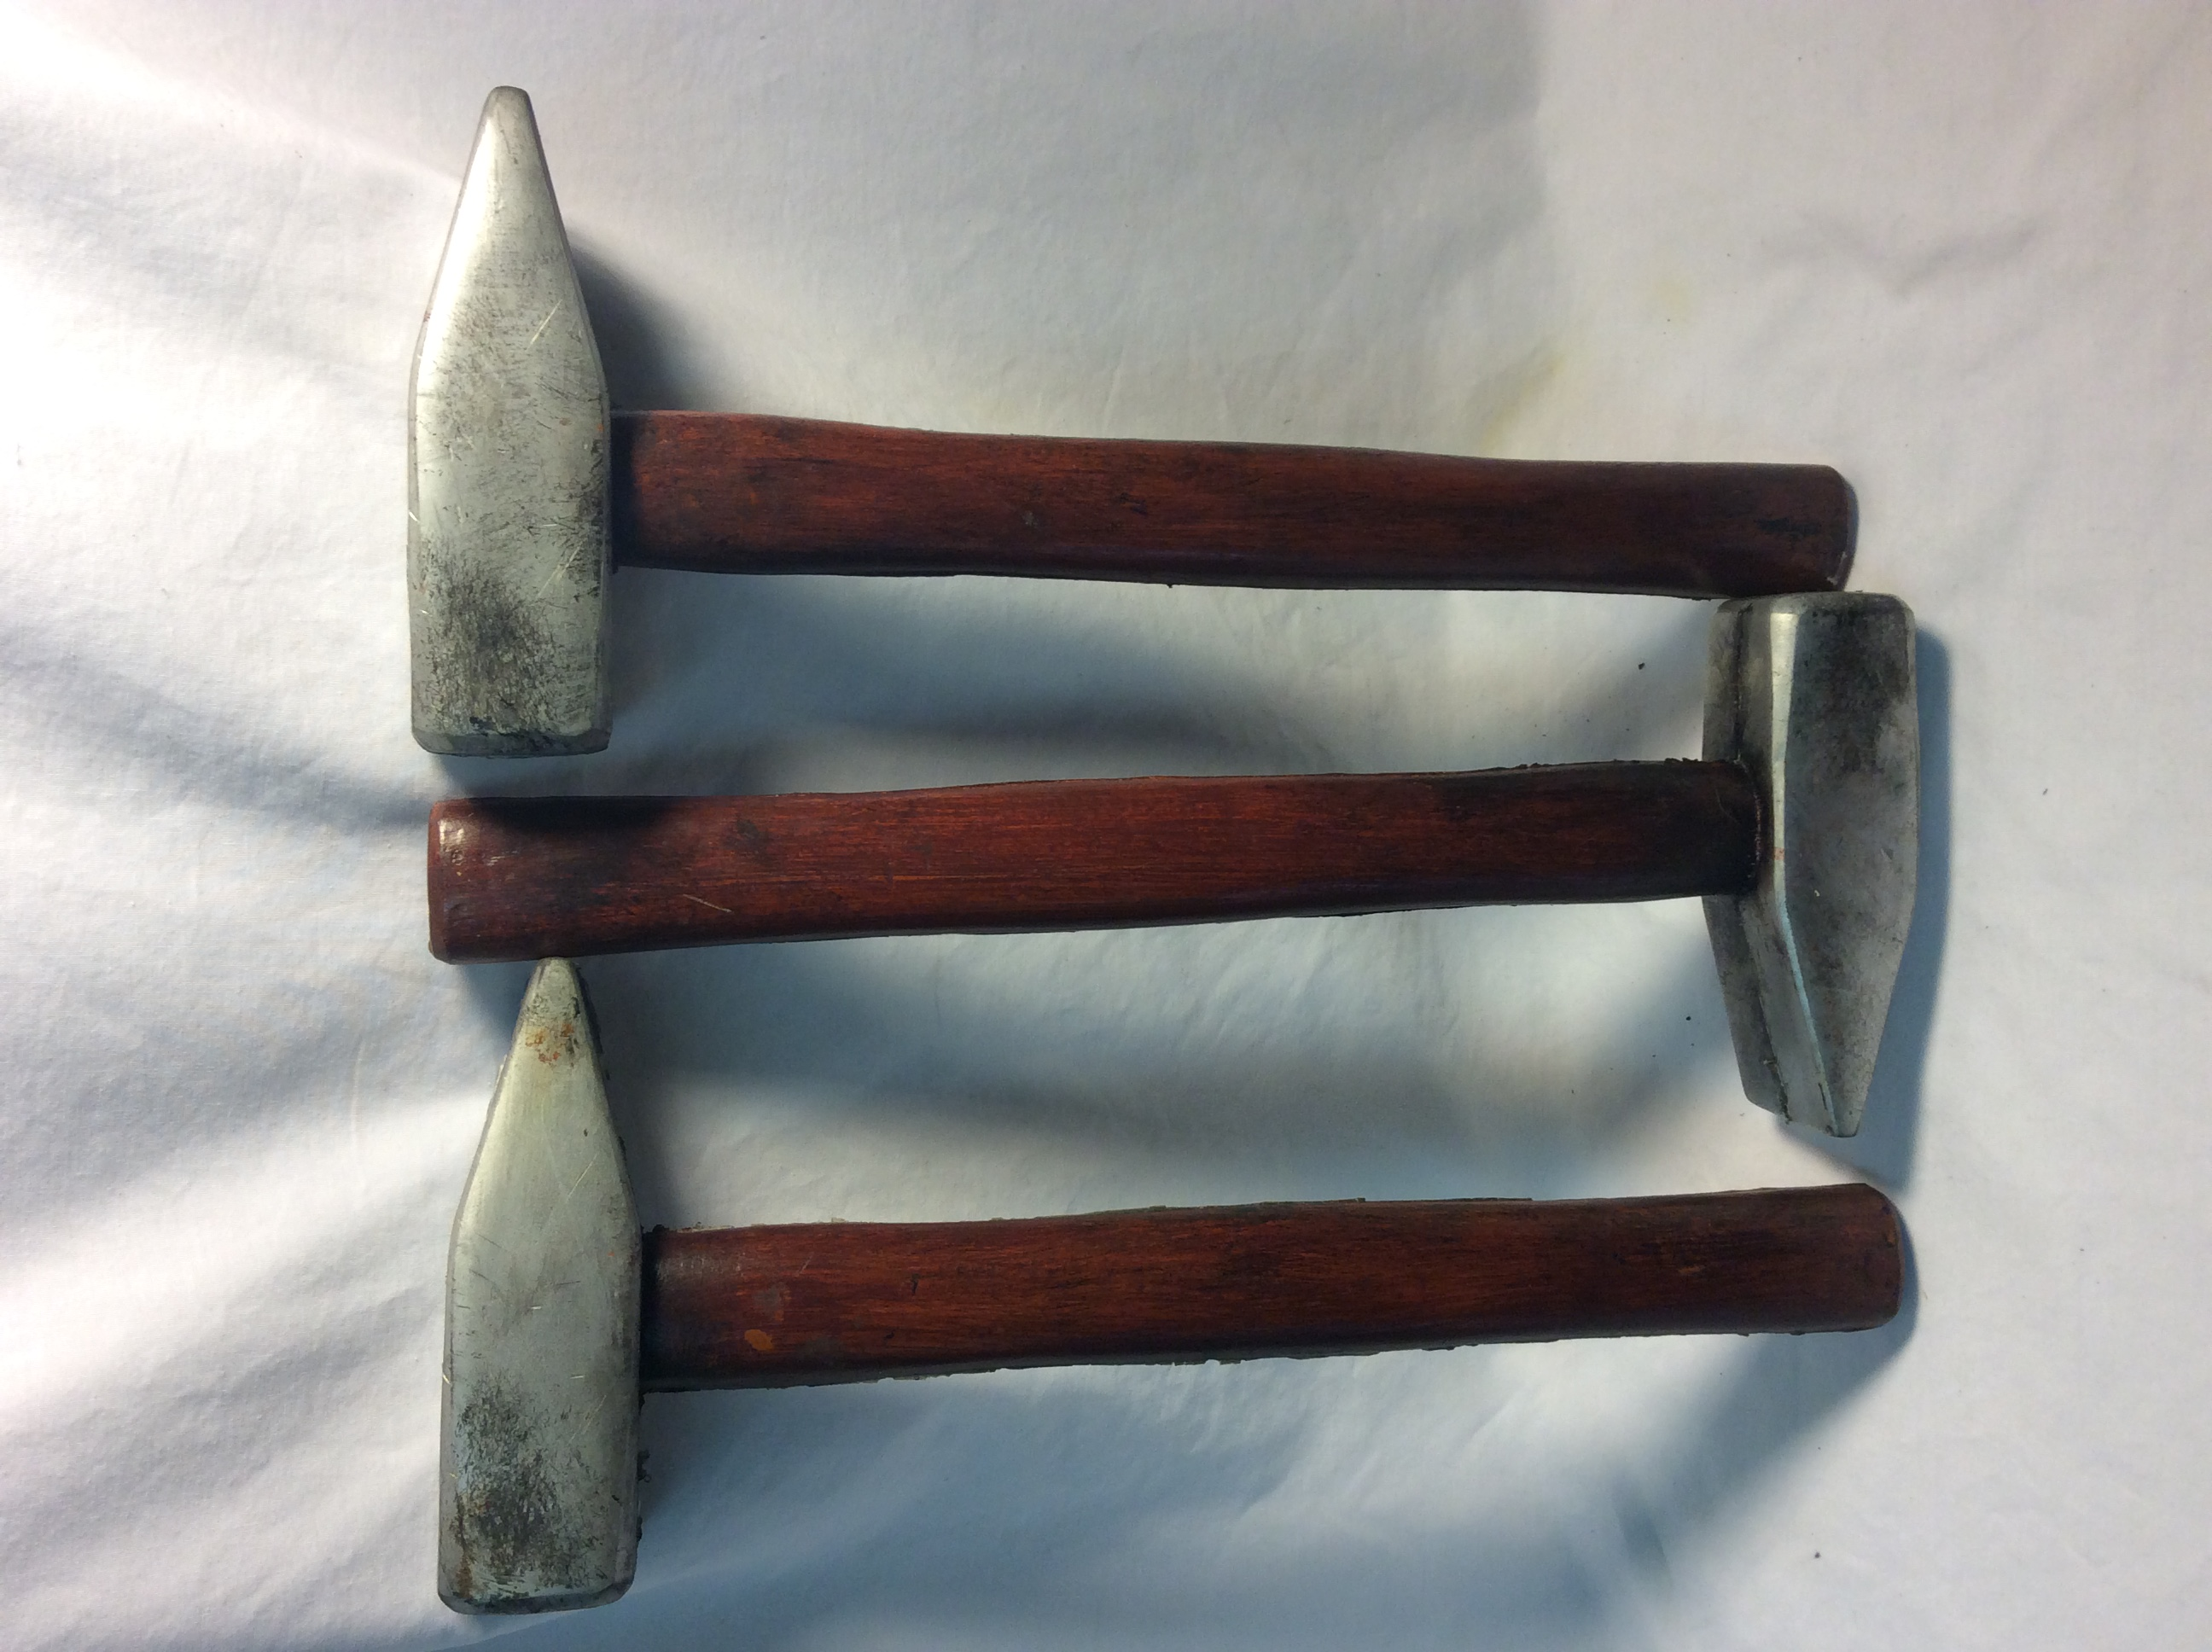 Sledge hammers - 5 rubber and 3 real